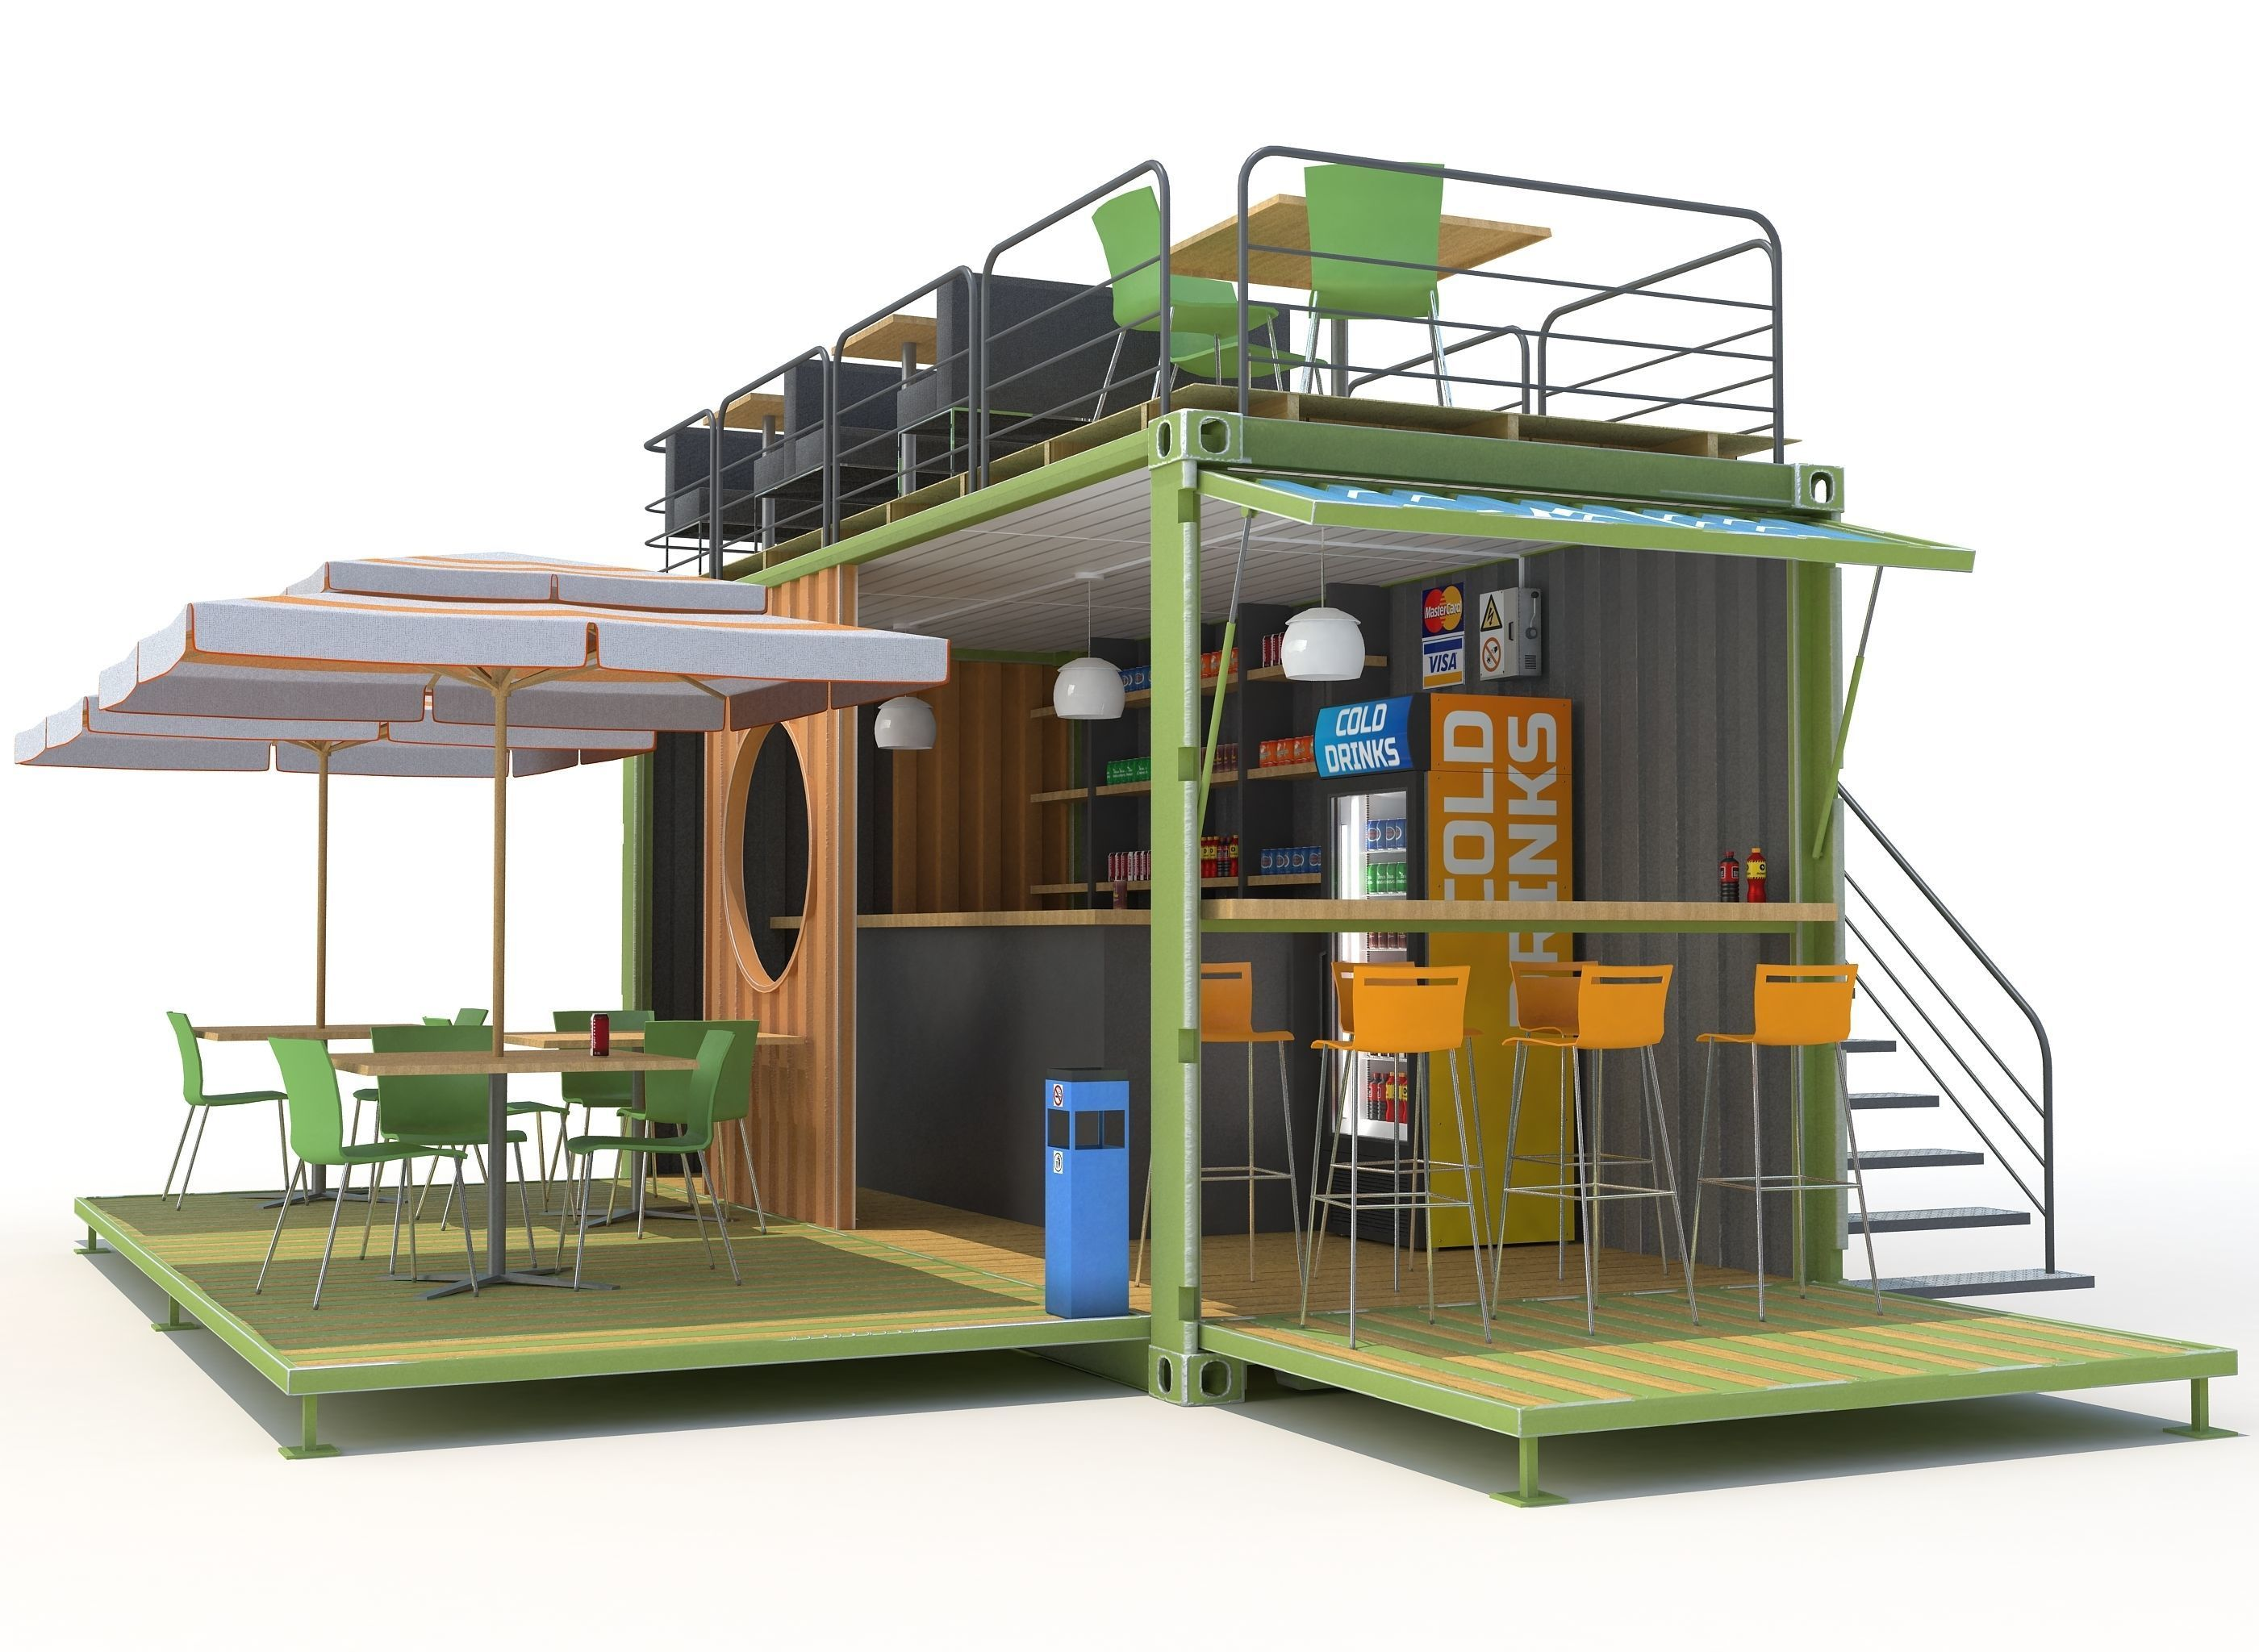 container-cafe-3d-model-max-obj-mtl-fbx_-18-11-2019-09-32-29.jpg